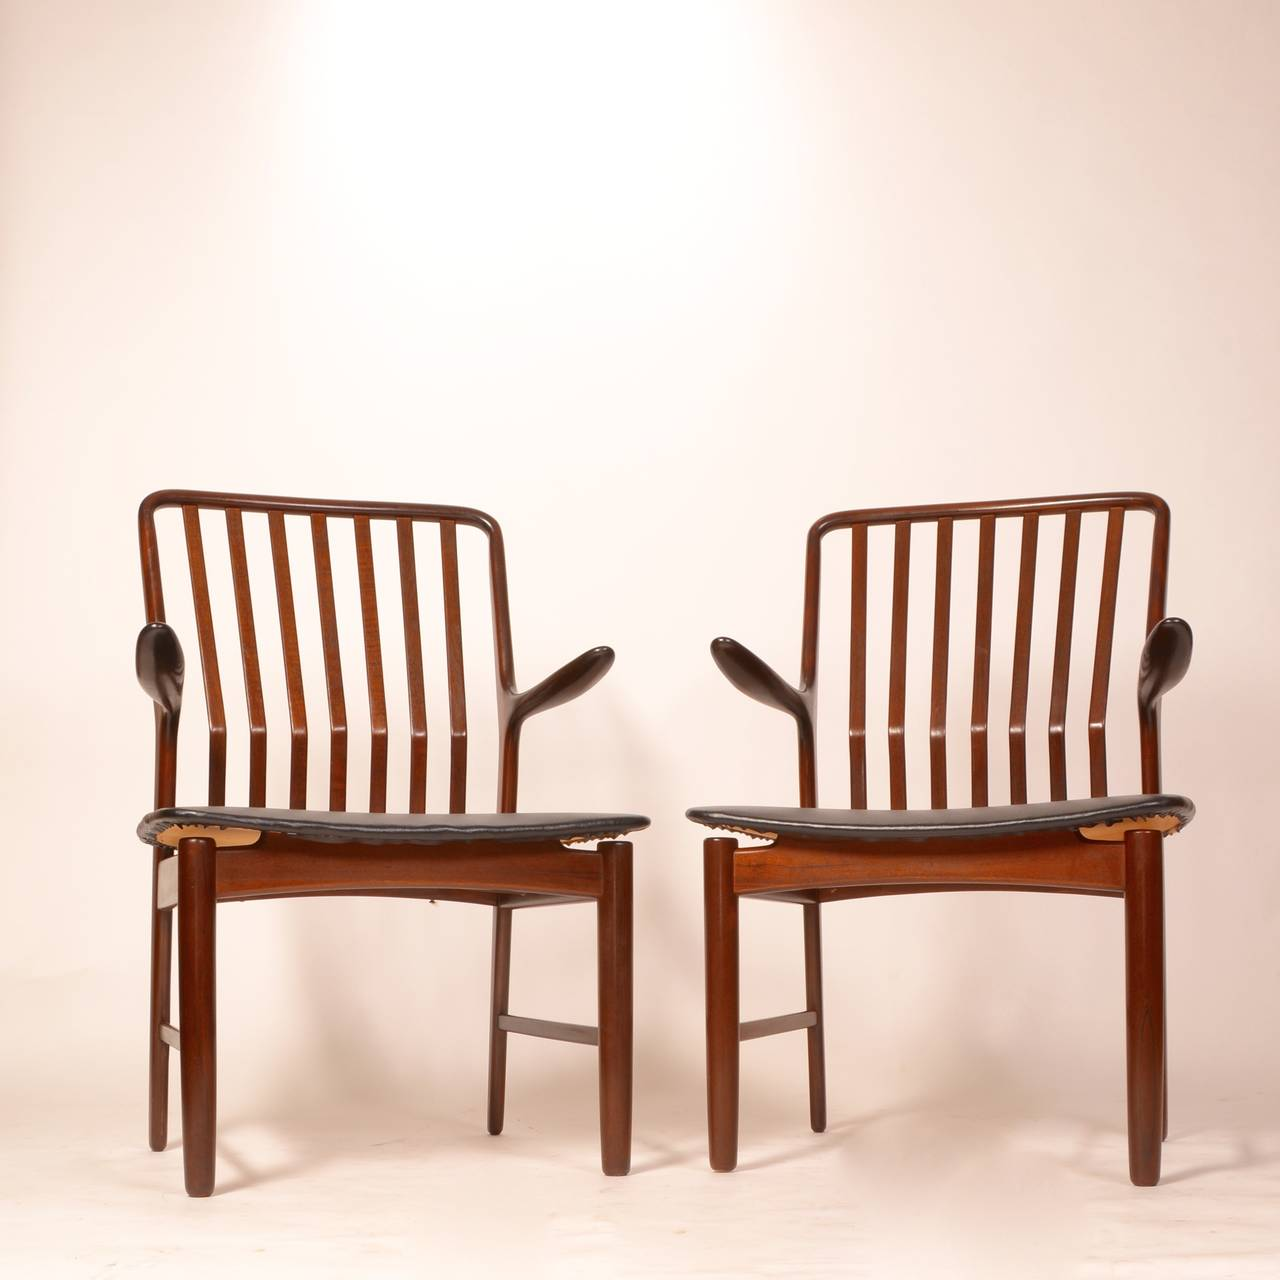 Beautiful set of 2 Danish modern dining chairs designed by Svend A. Madsen, imported by Moreddi, circa 1960s.  Armchairs with wonderfully shaped armrests & curved backs for extra comfort and large seats. A very sturdy design.